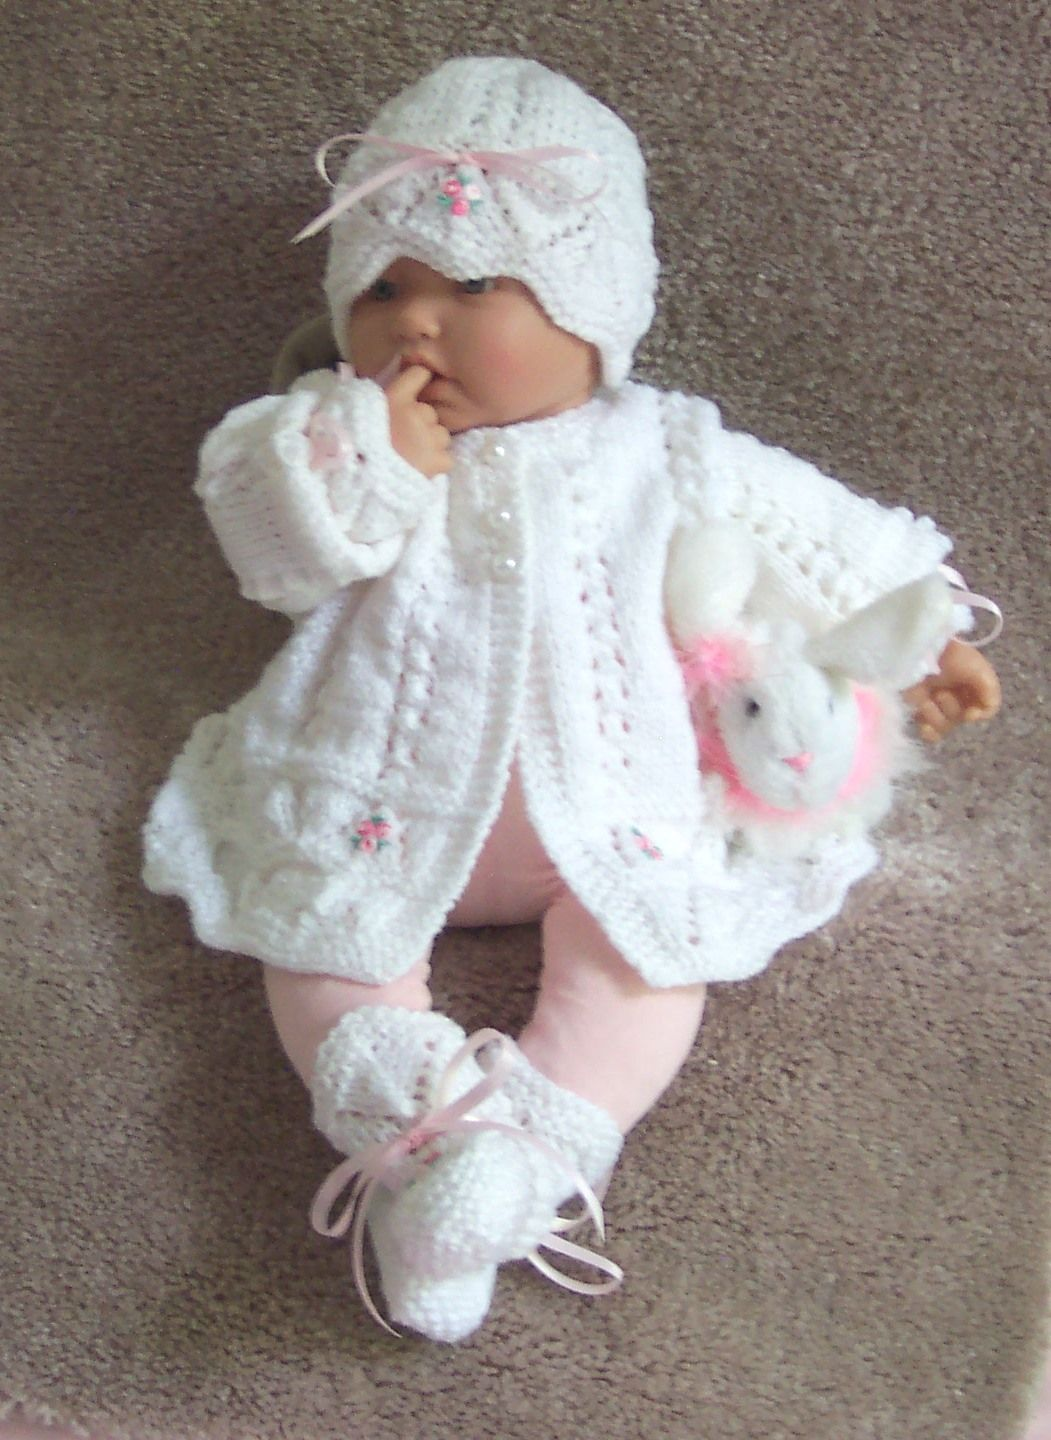 5bad91a83a7 Handmade white baby sweater, hat, and booties set. Layette hand ...